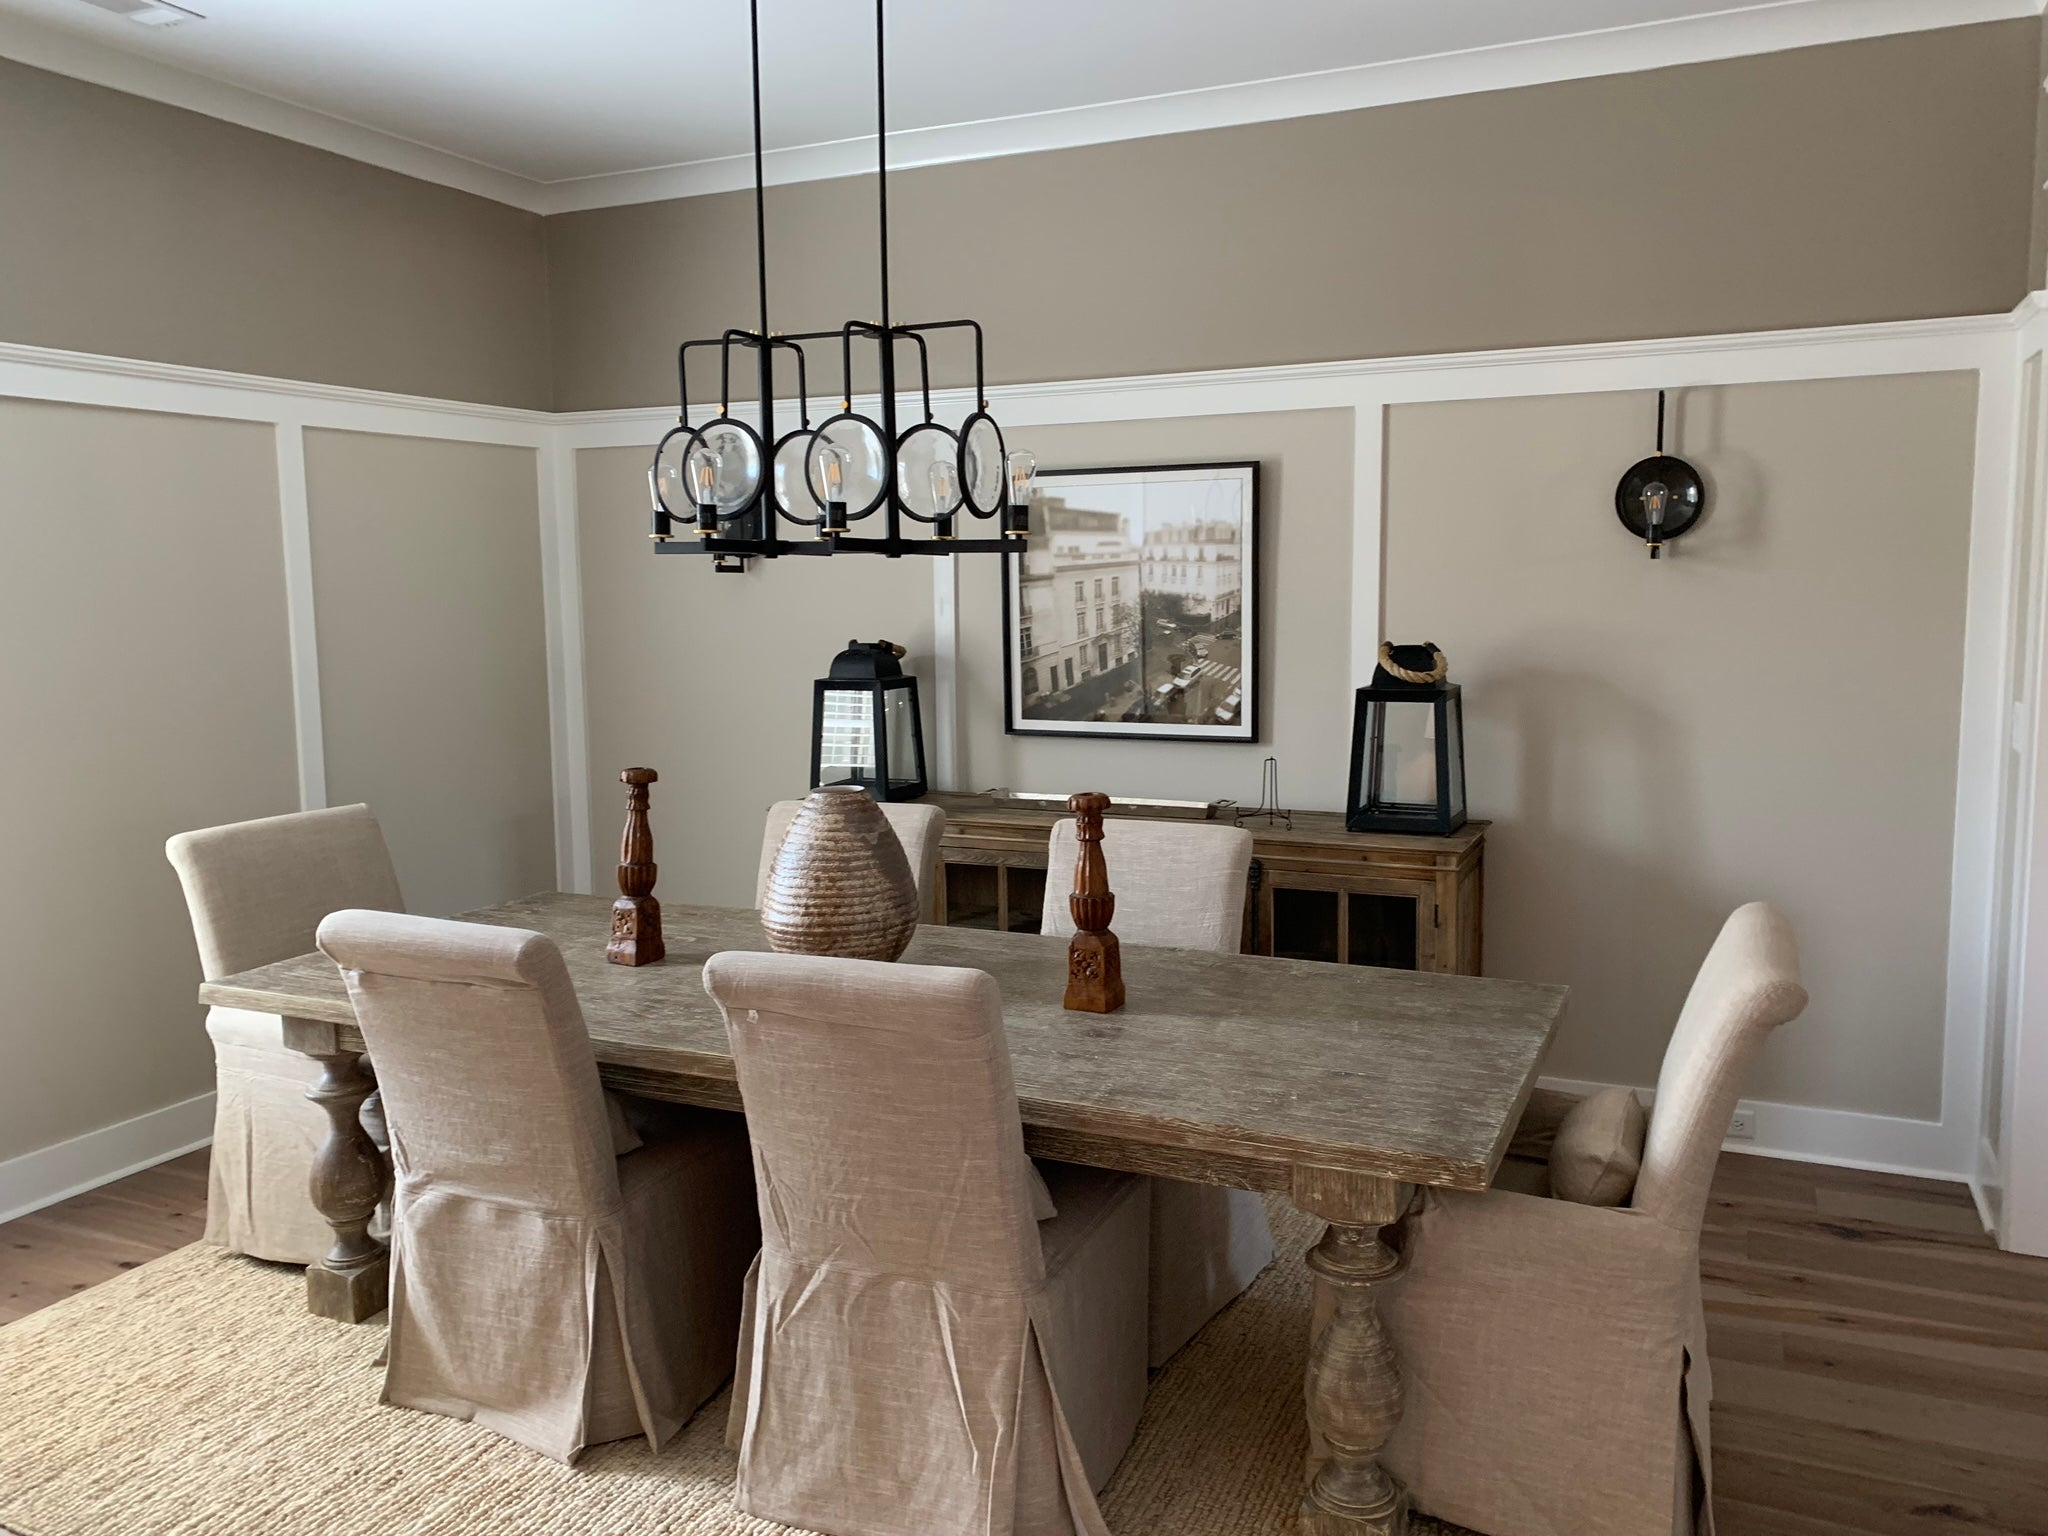 Dining Room St. Jude Dream Home 2019